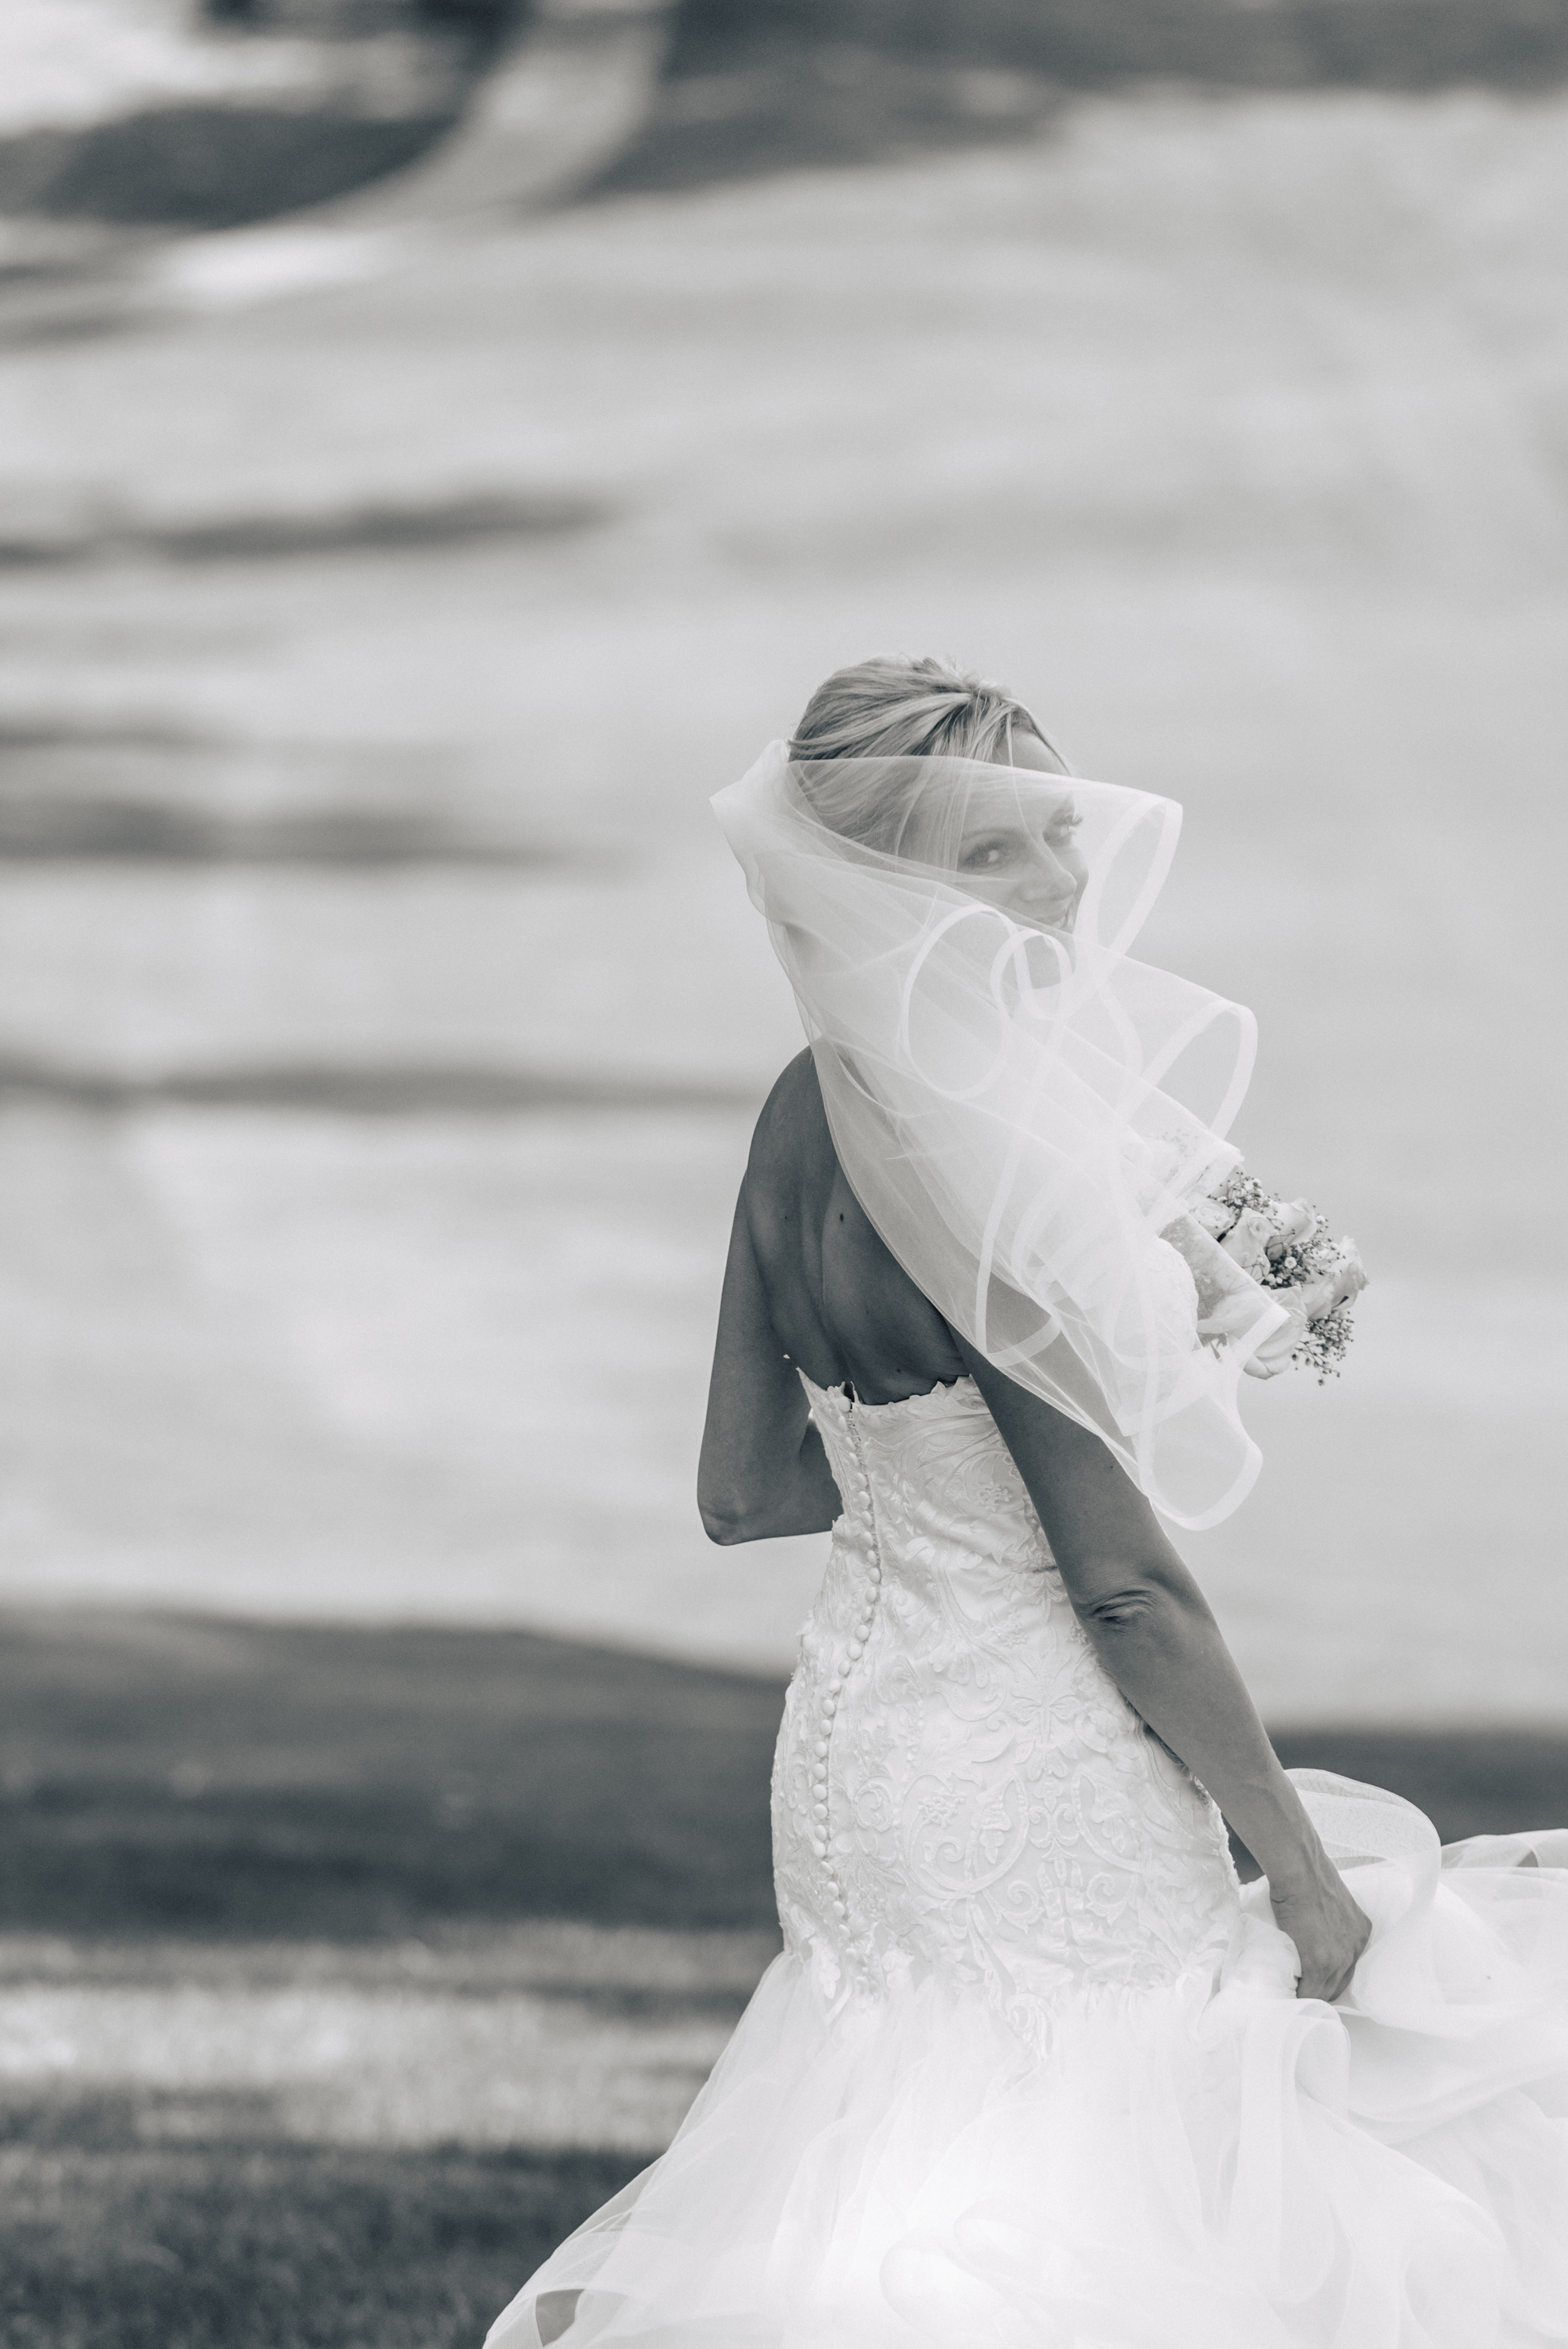 032Koper-Ekiert-Roanoke-Wedding-Virginia-Photographer-mattrossphotography.com.jpg